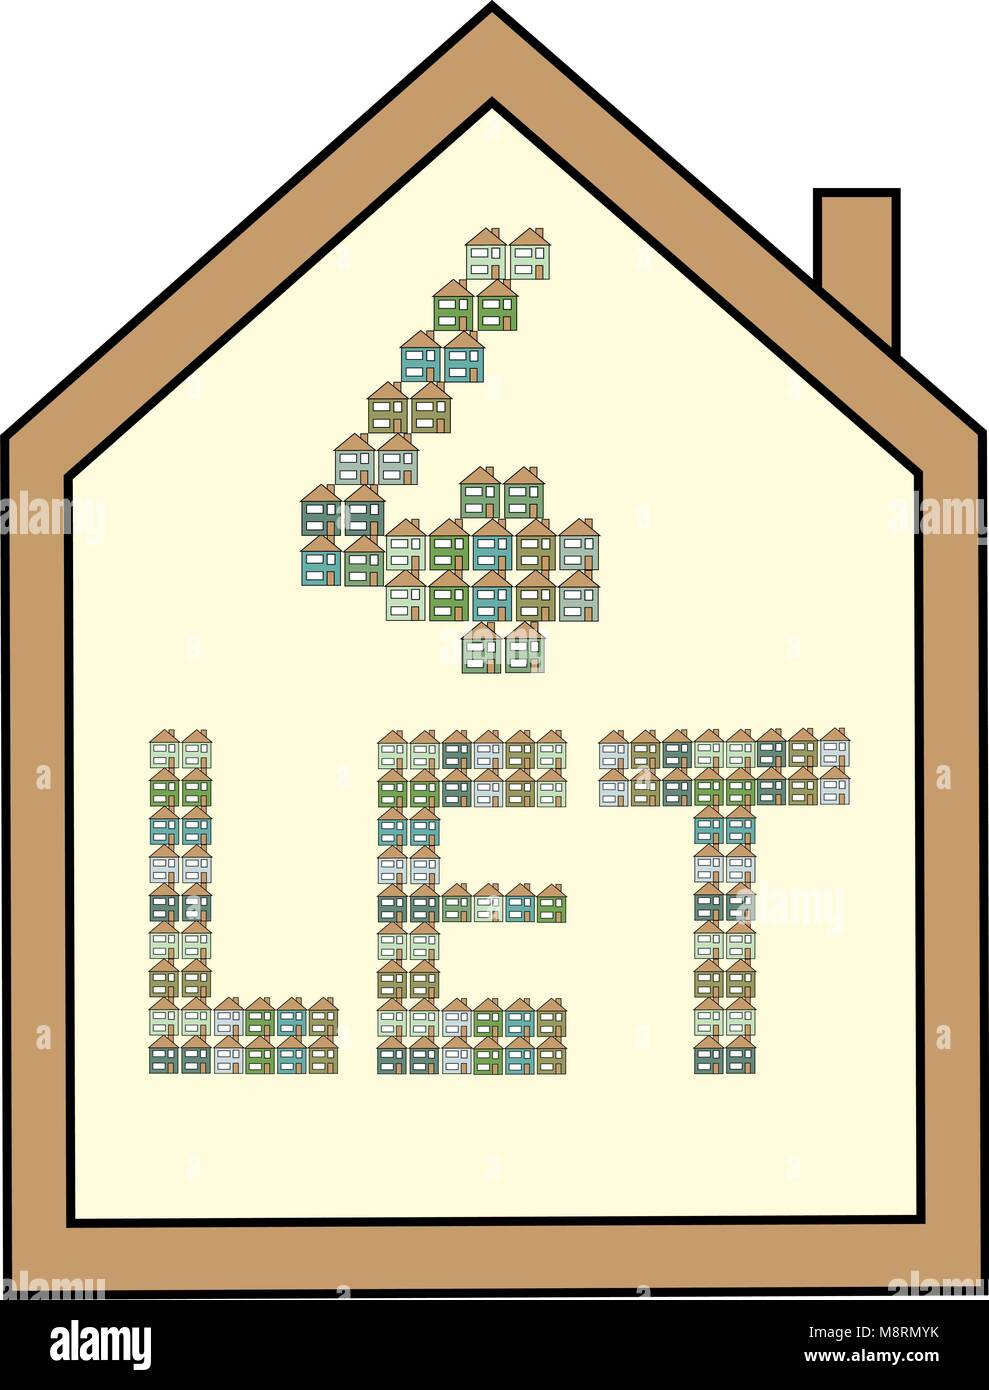 House shaped white for let board with brown edging and letters made from green, blue and aqua mini houses. - Stock Vector